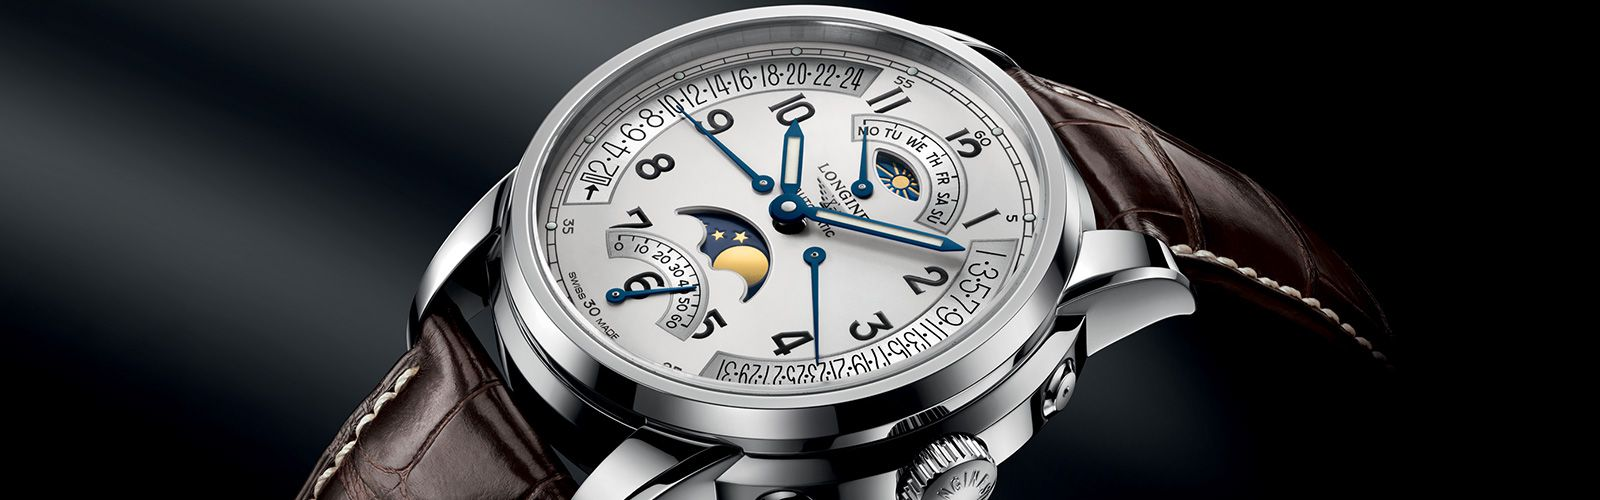 Raymond Weil Watches Fake